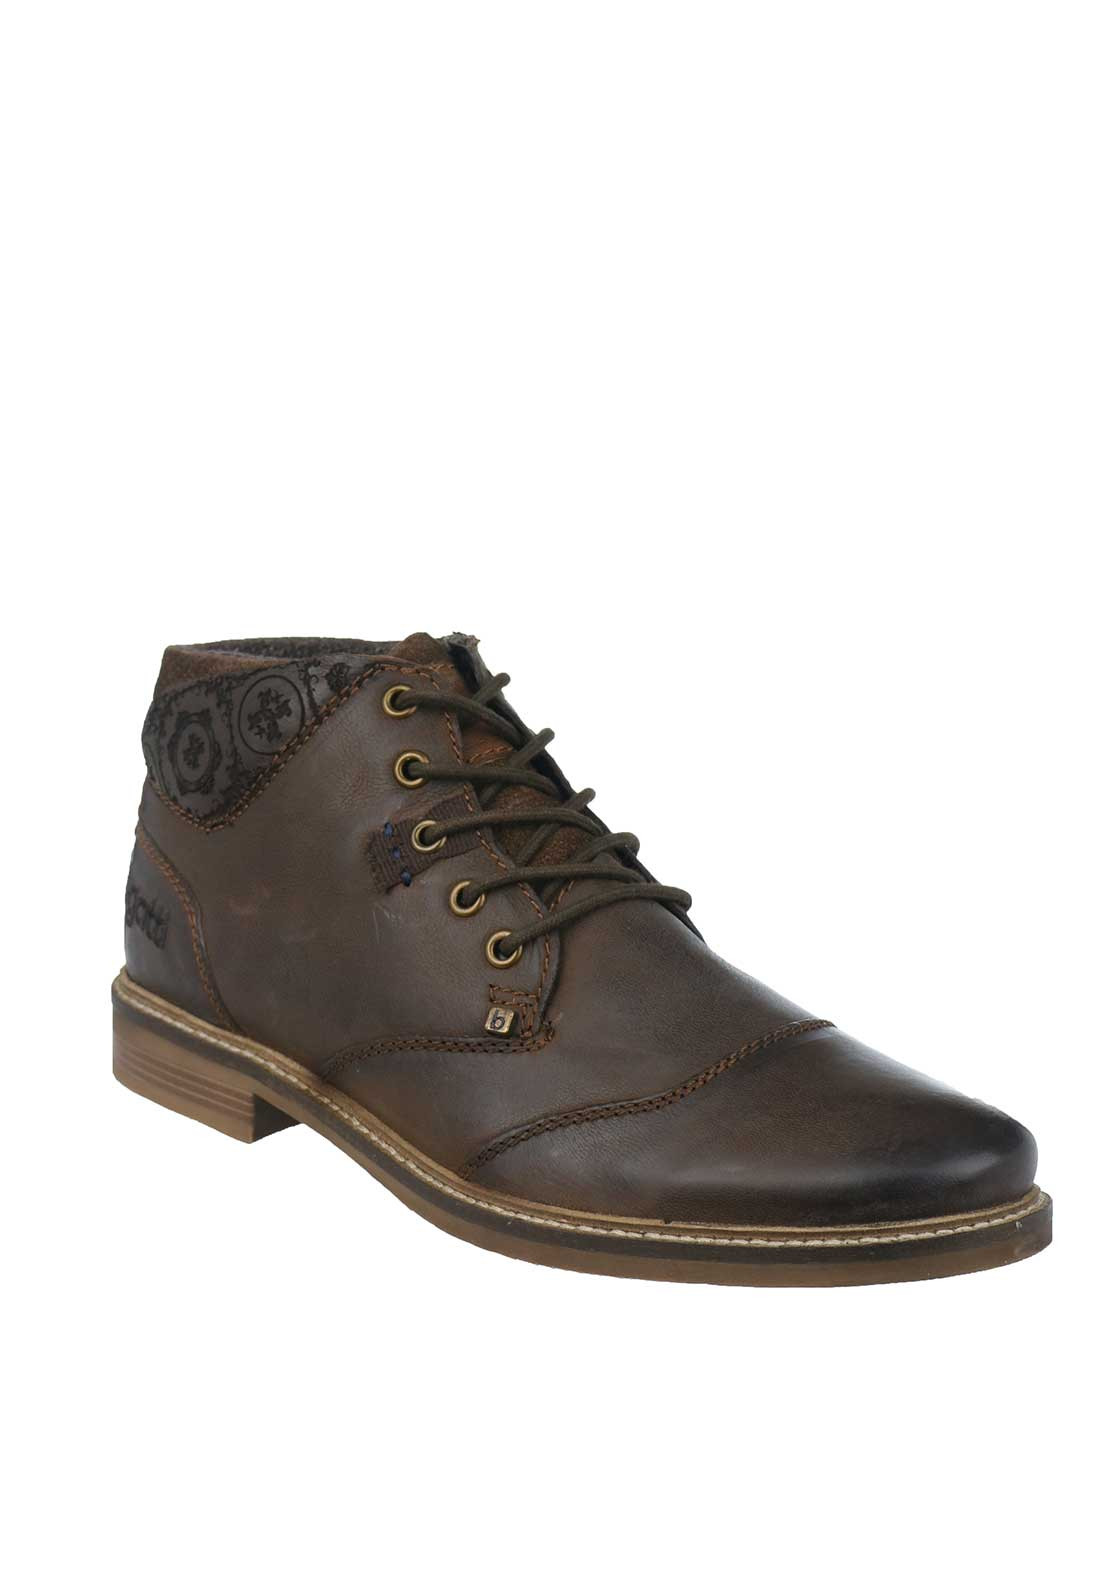 Bugatti Mens Leather Raw Edged Lace-Up Casual Boot, Brown